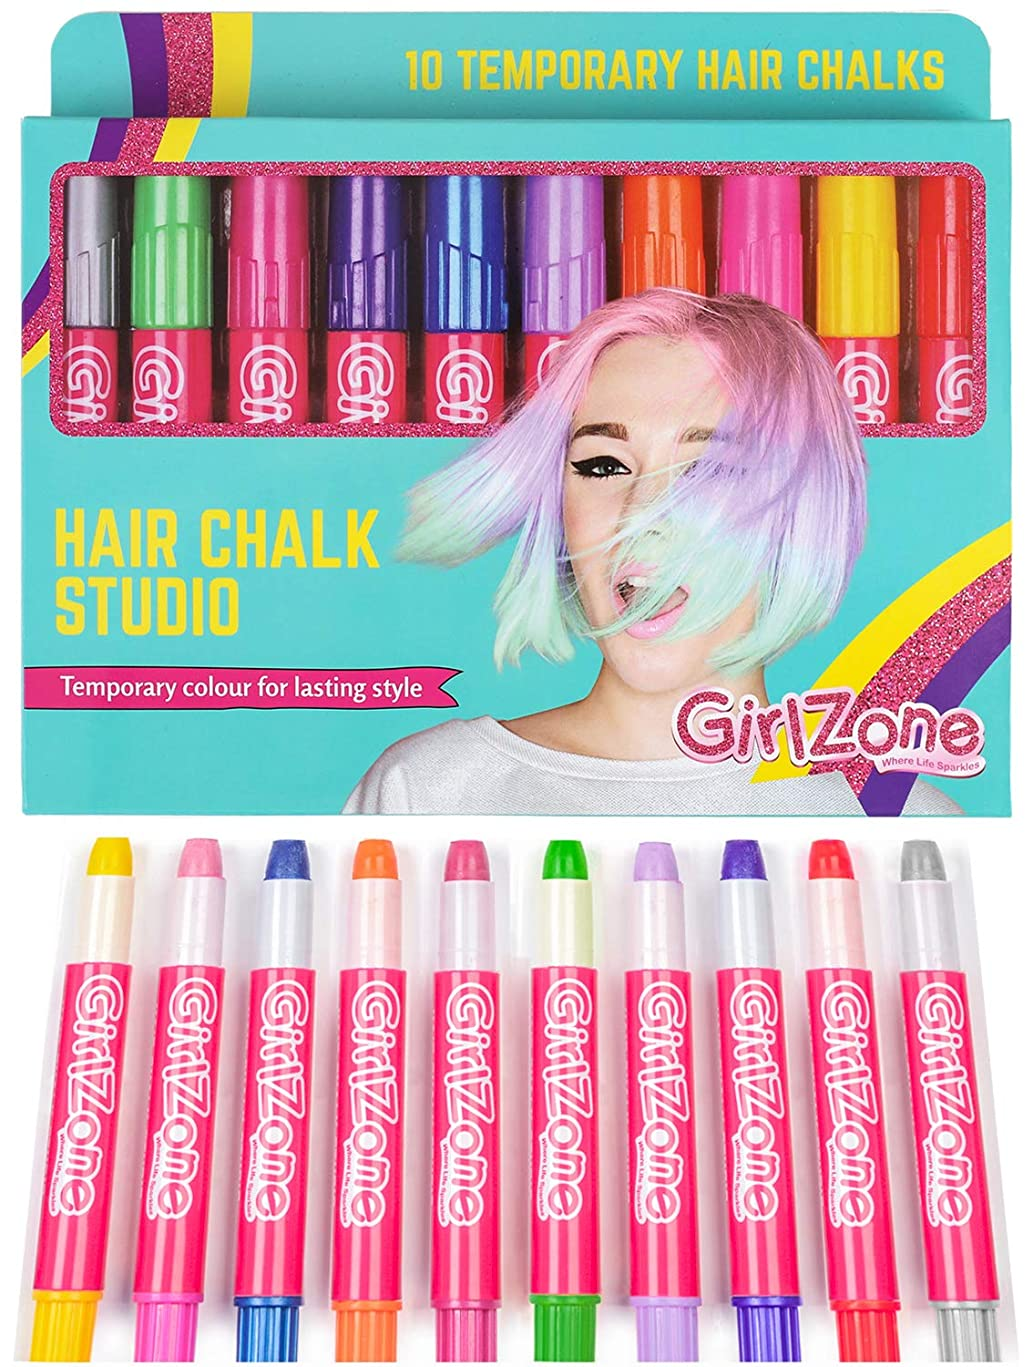 Hair Chalk Birthday Gifts For Girls - 10 Colorful Hair Chalk Pens. Temporary Color, Presents For Girls Of All Ages